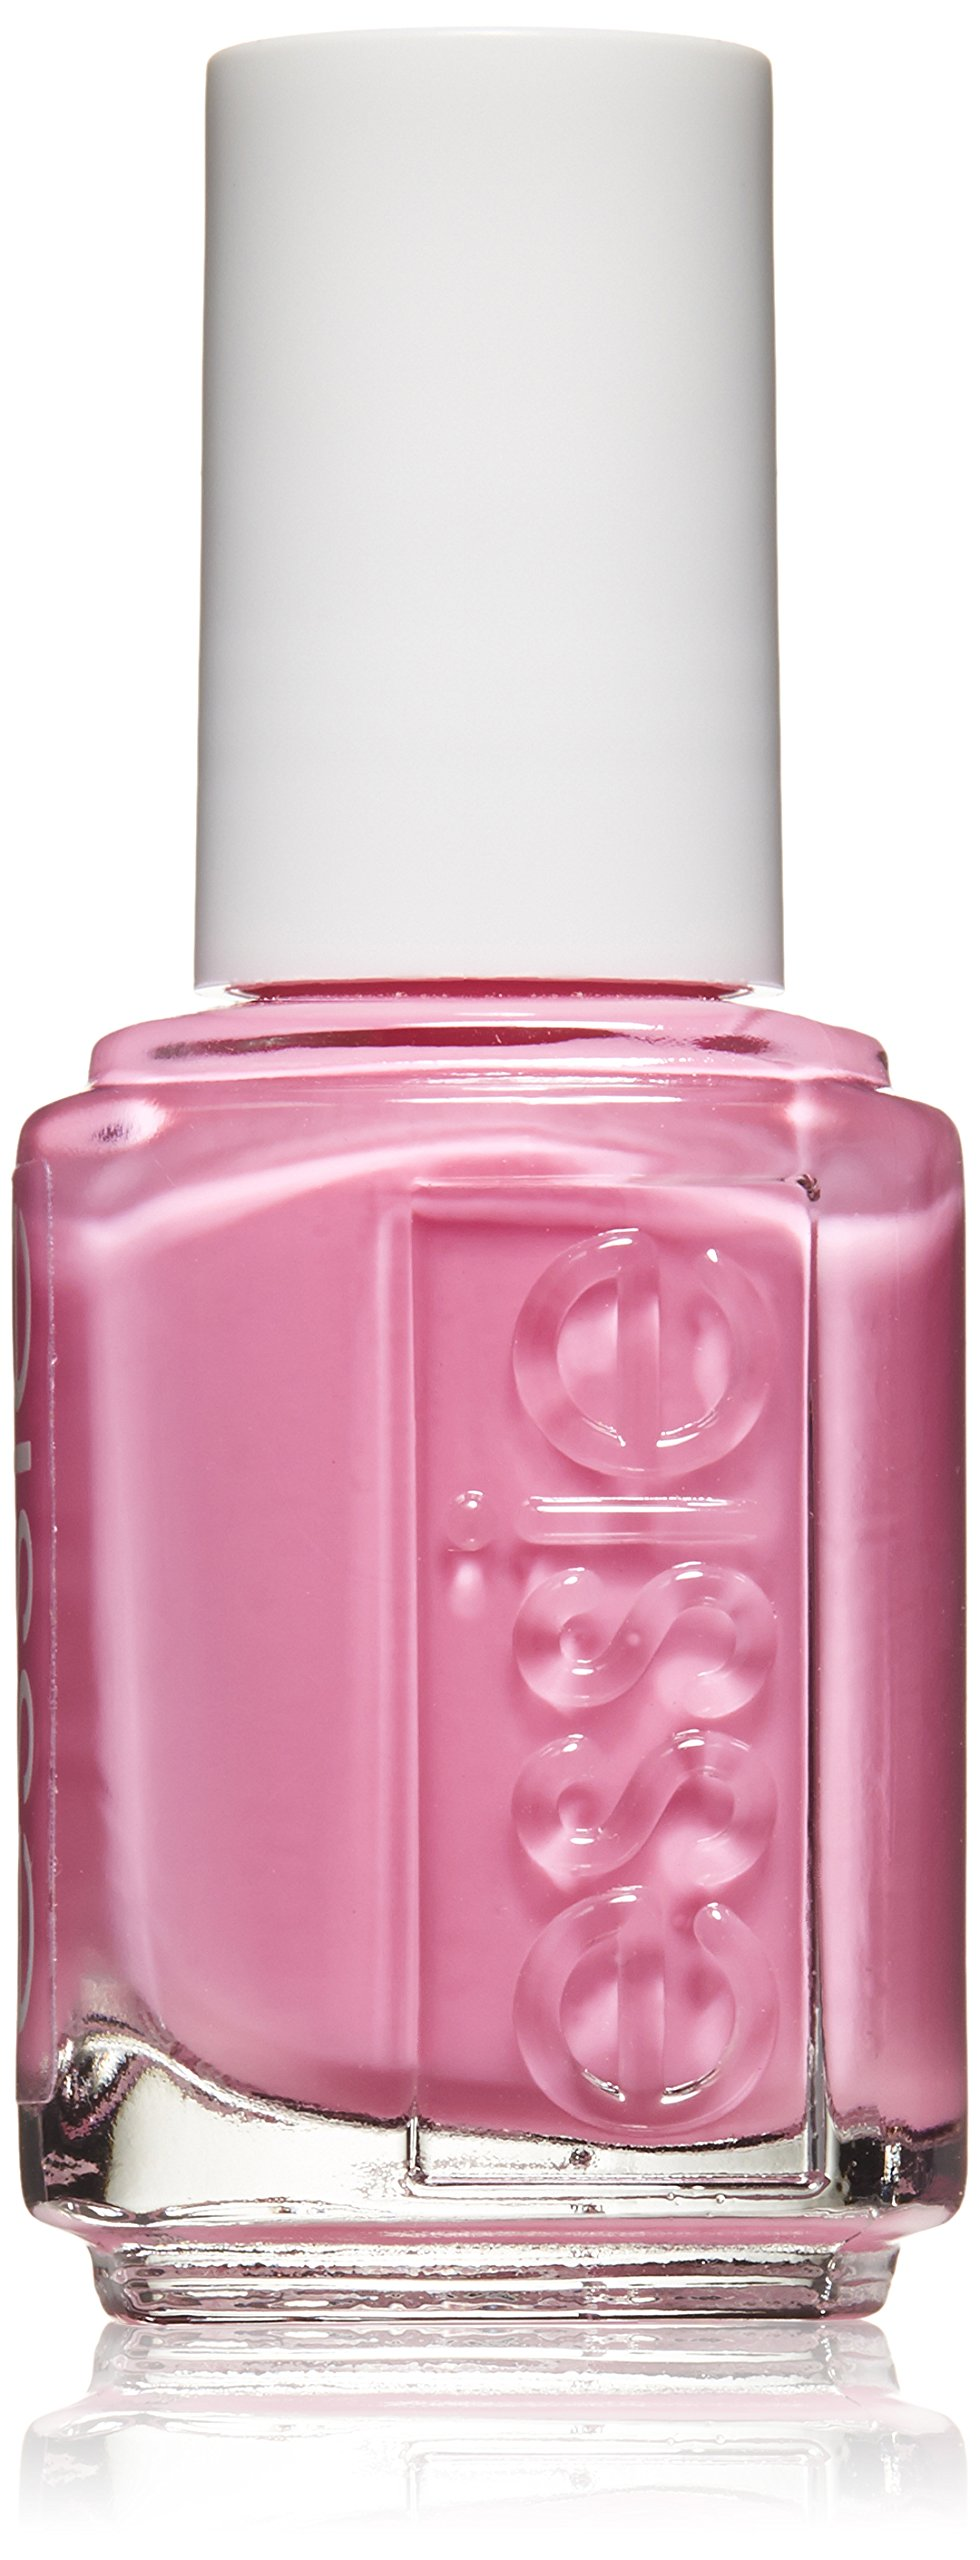 Amazon.com : essie nail polish, pink diamond, rose pink nail polish ...